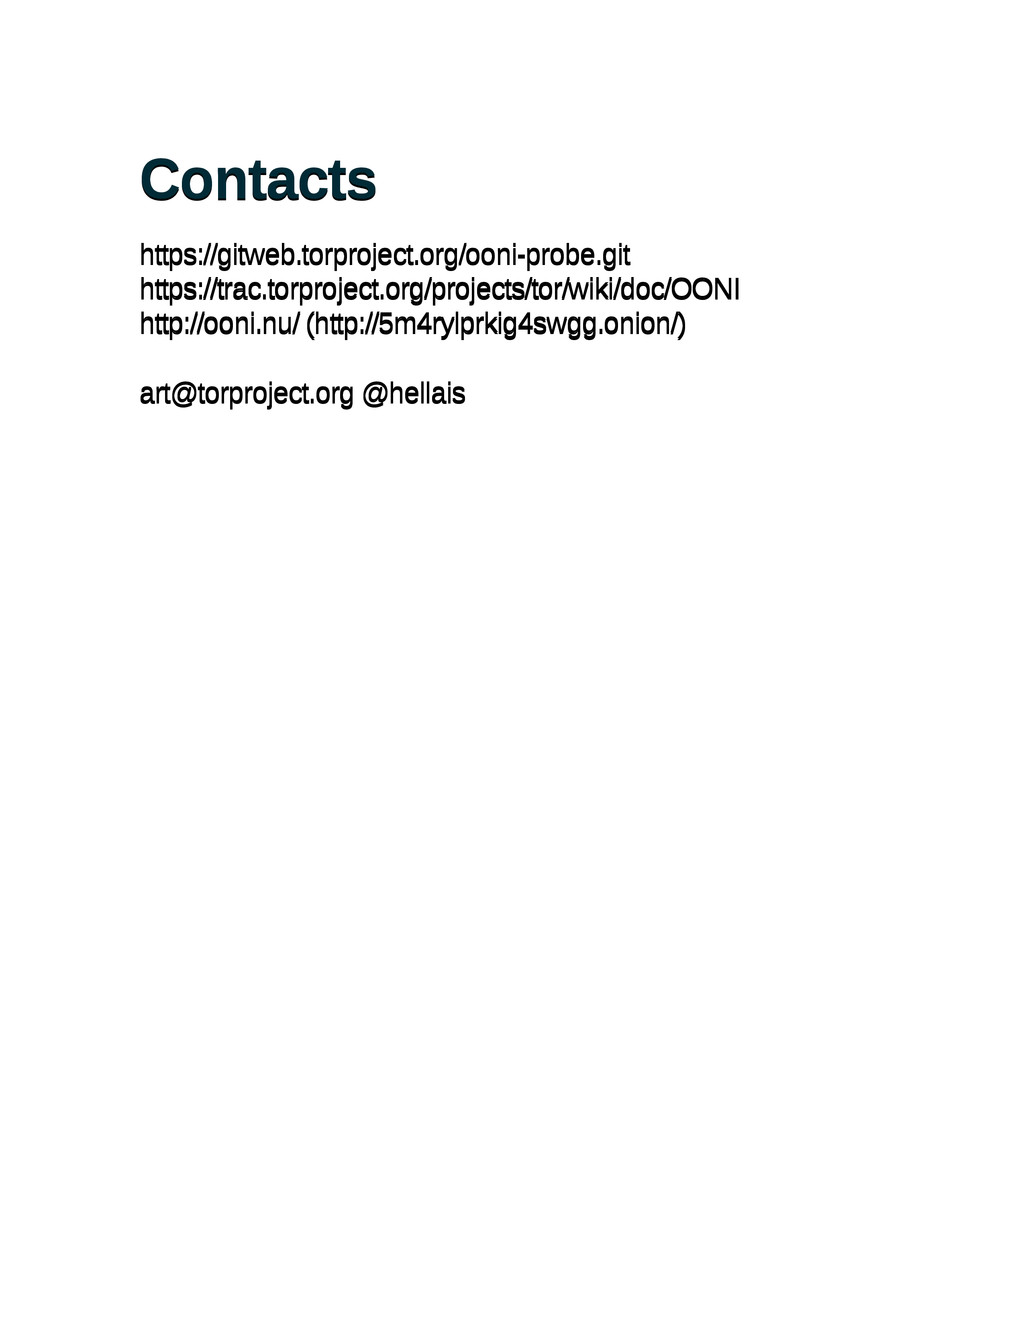 Contacts Contacts https://gitweb.torproject.org...